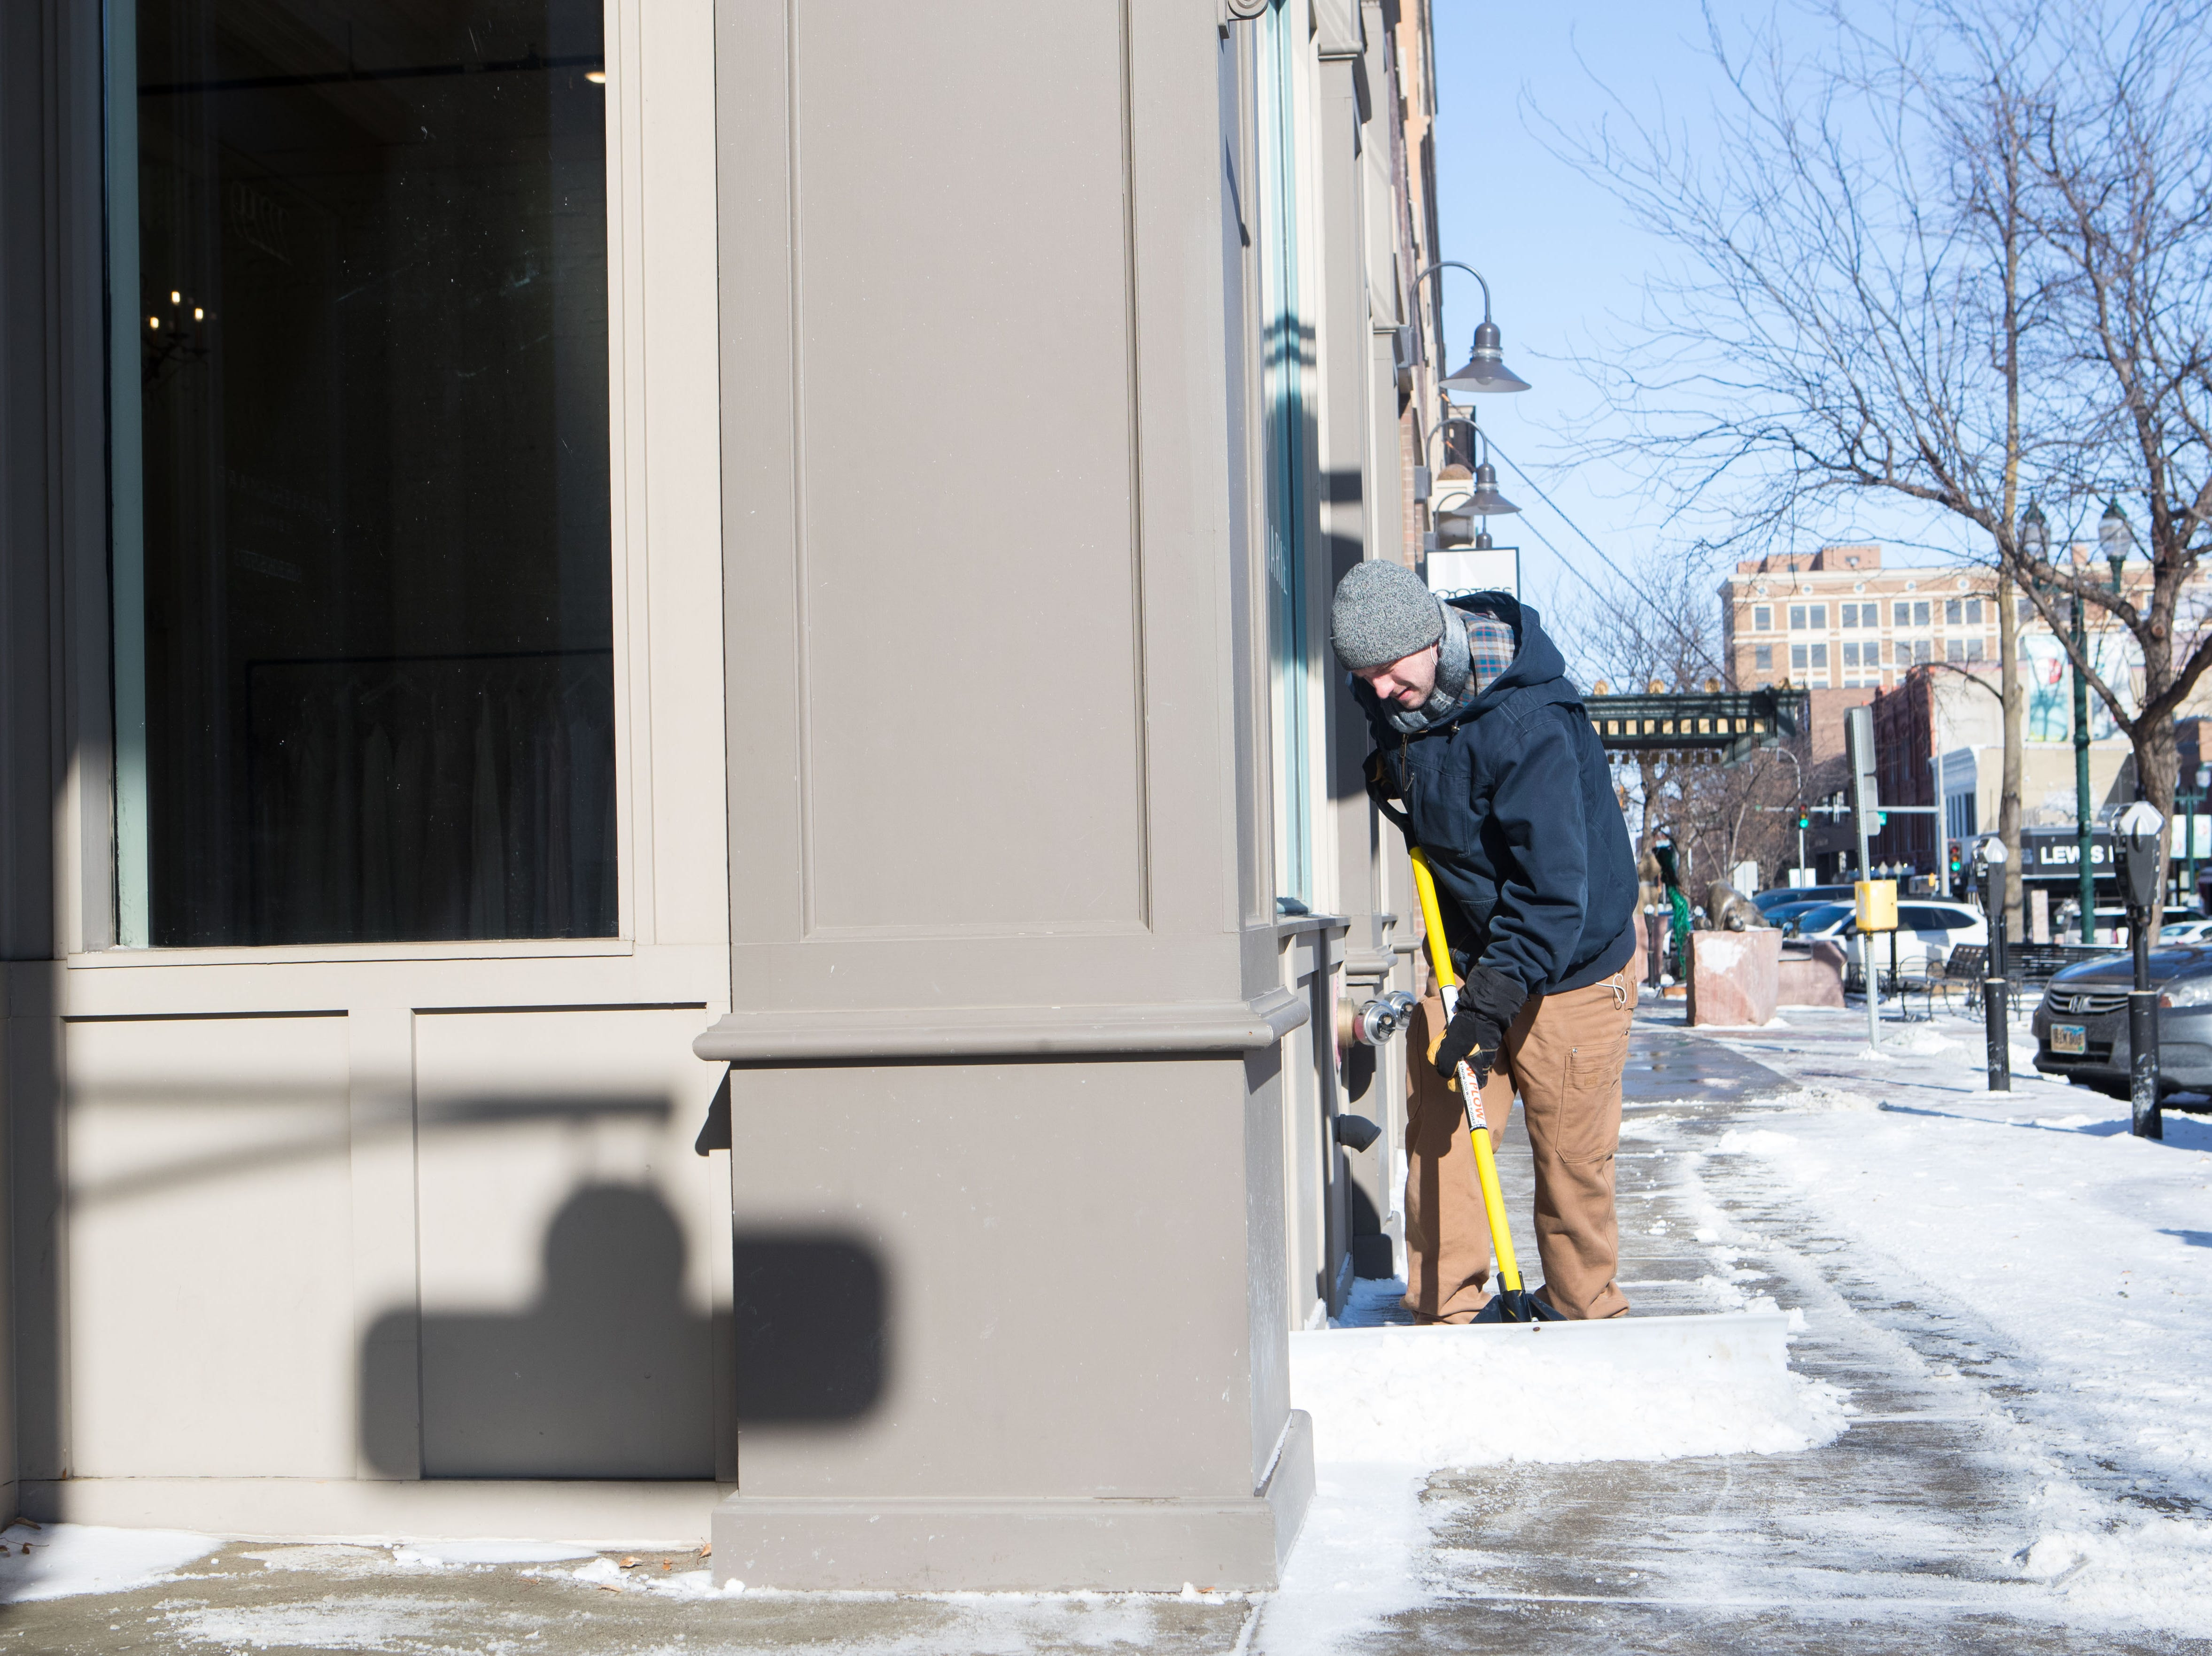 Jordan Hawks plows the sidewalk in downtown Sioux Falls, S.D., Monday, Jan. 28, 2019.